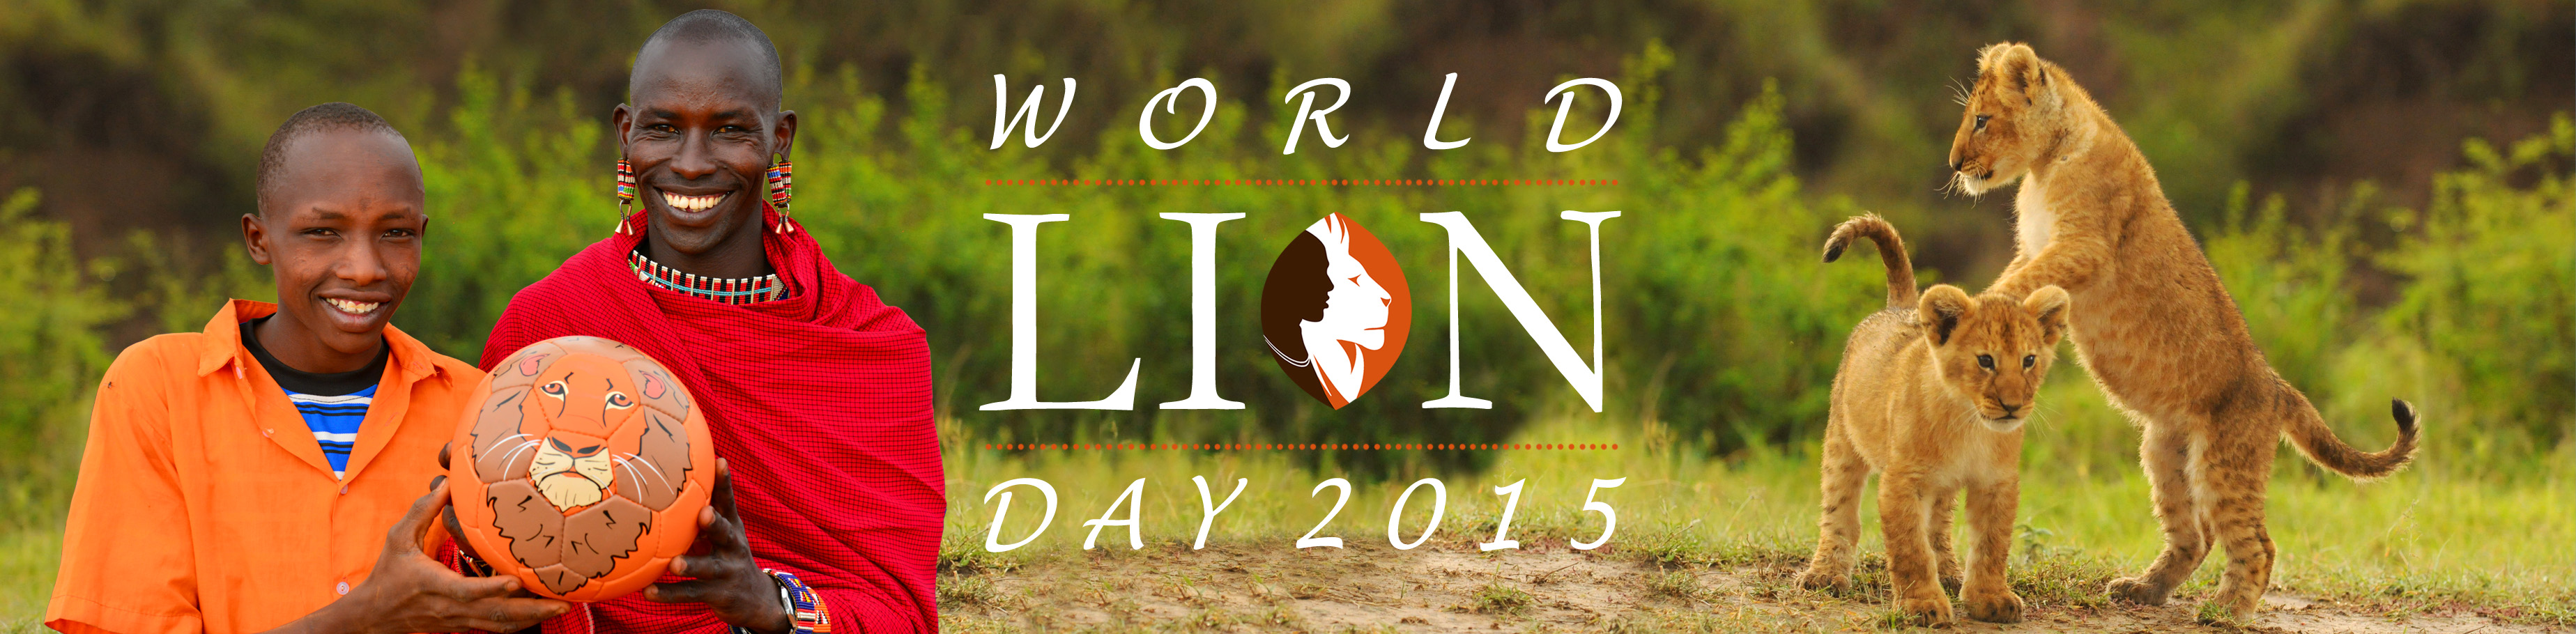 World Lion Day - danner copy